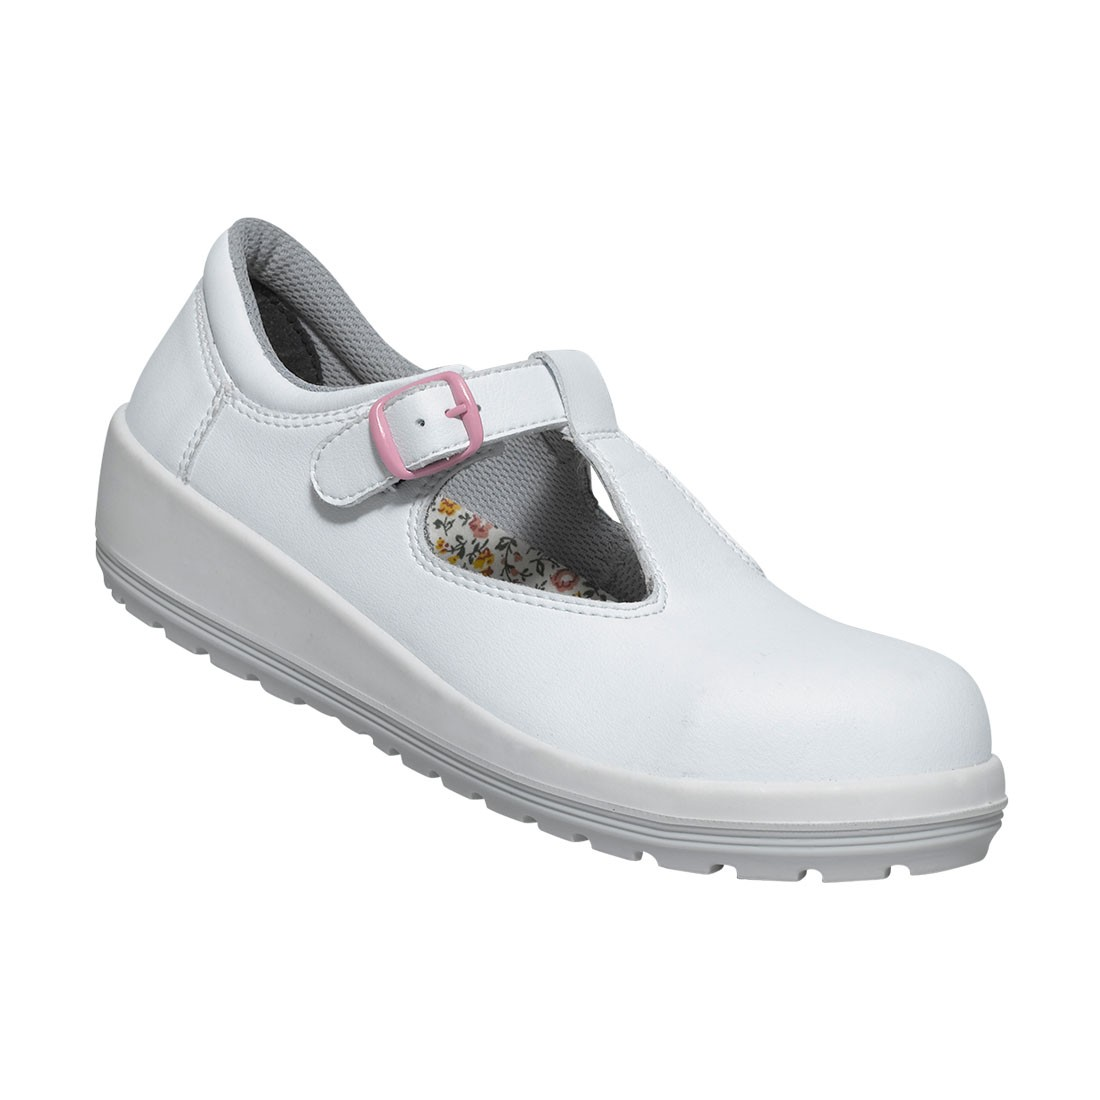 Parade Safety Shoes Price